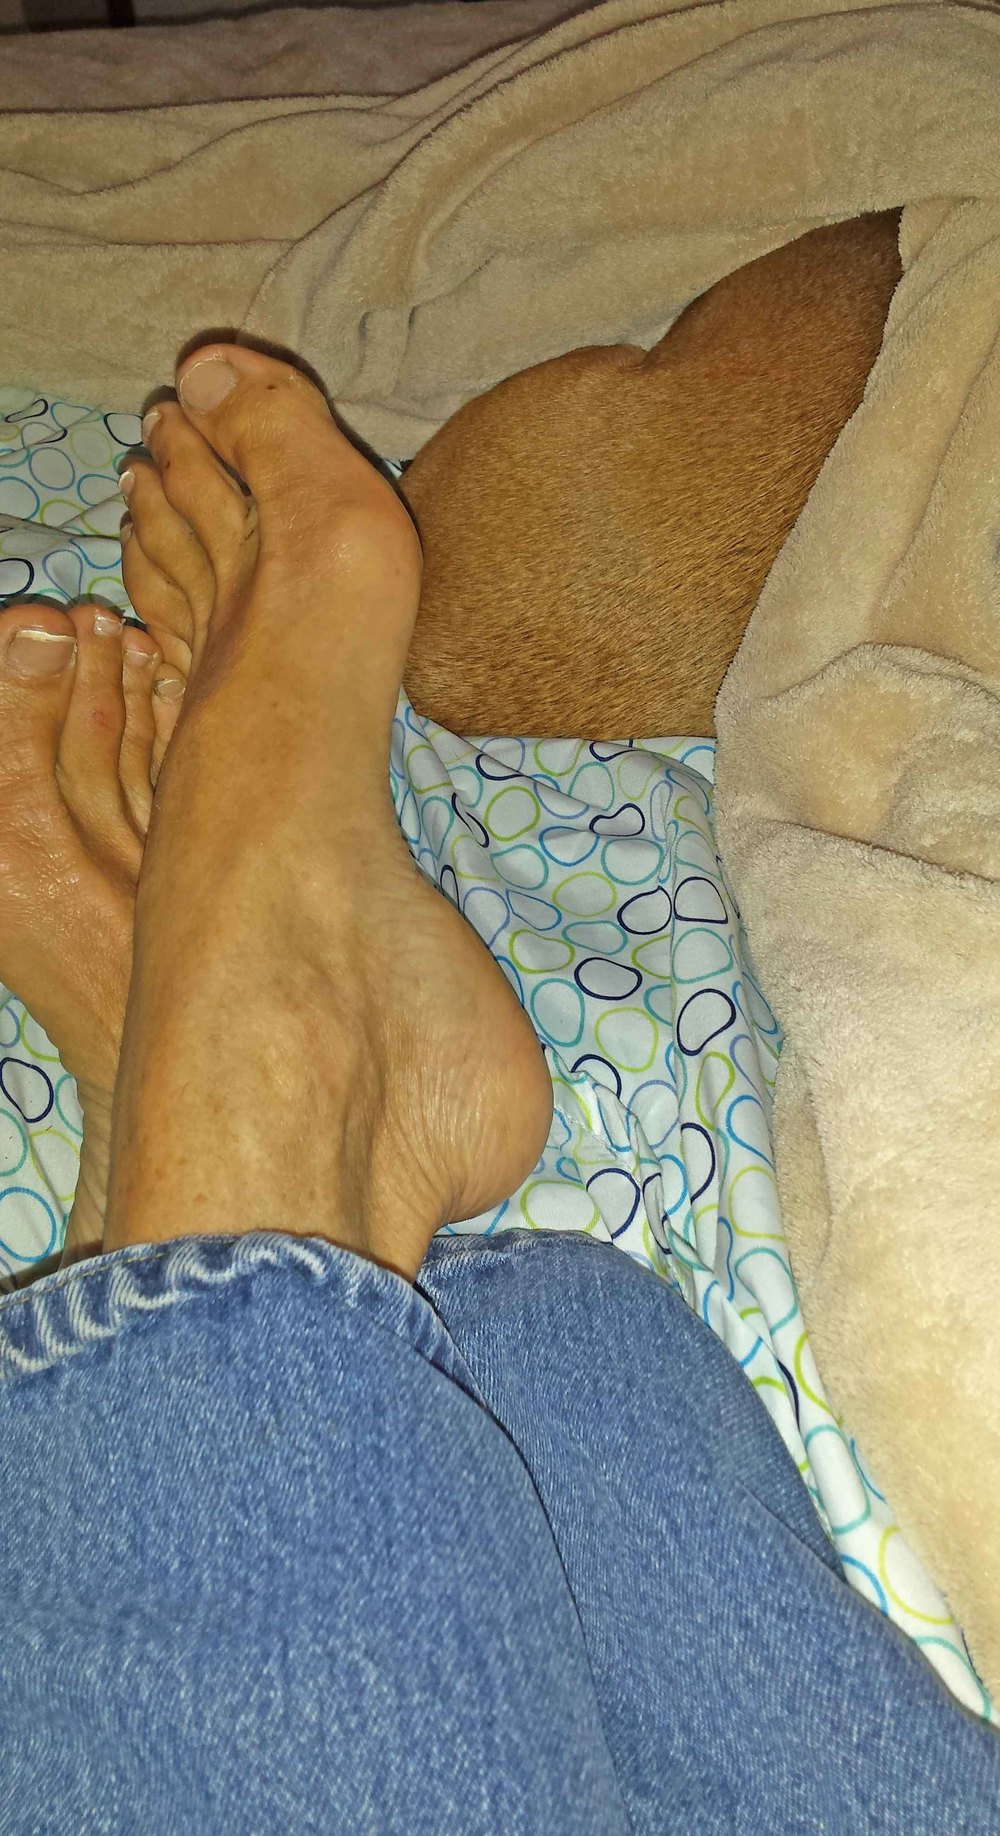 The Morning After - this morning. I know, I know - I really need a pedicure. But it just seems so irrelevant right now.